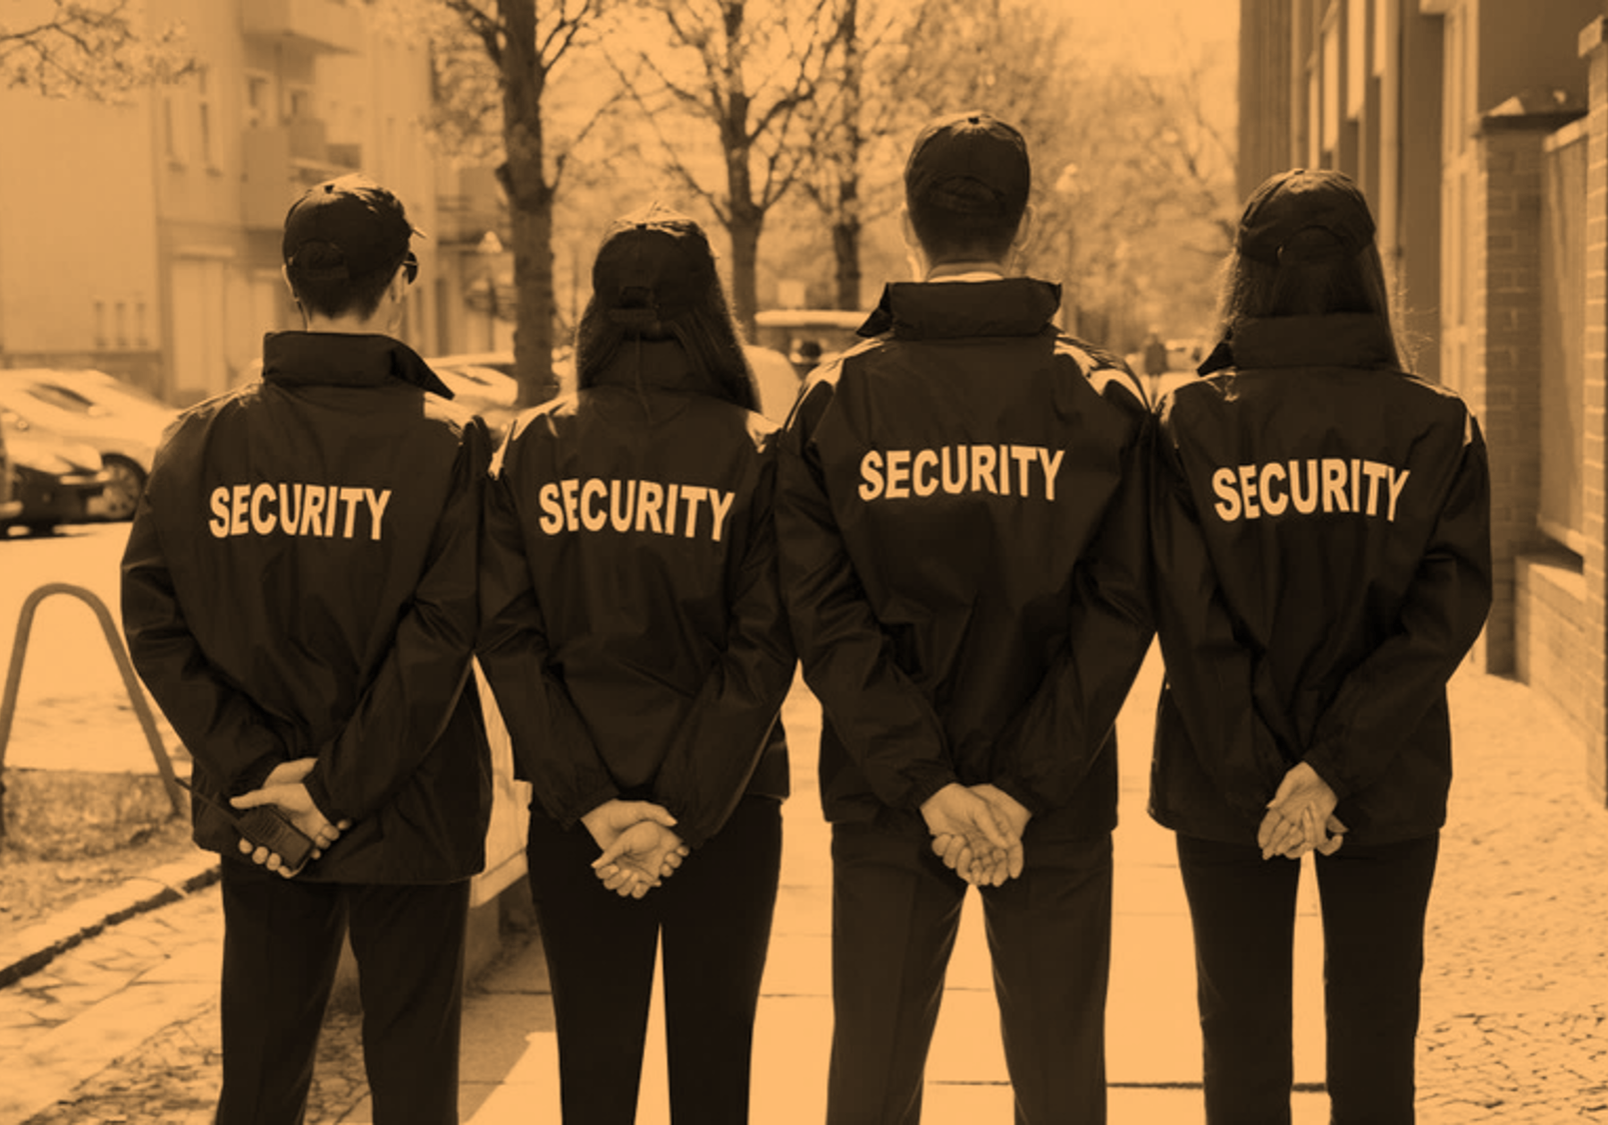 Security Companies By Chameleon Associates